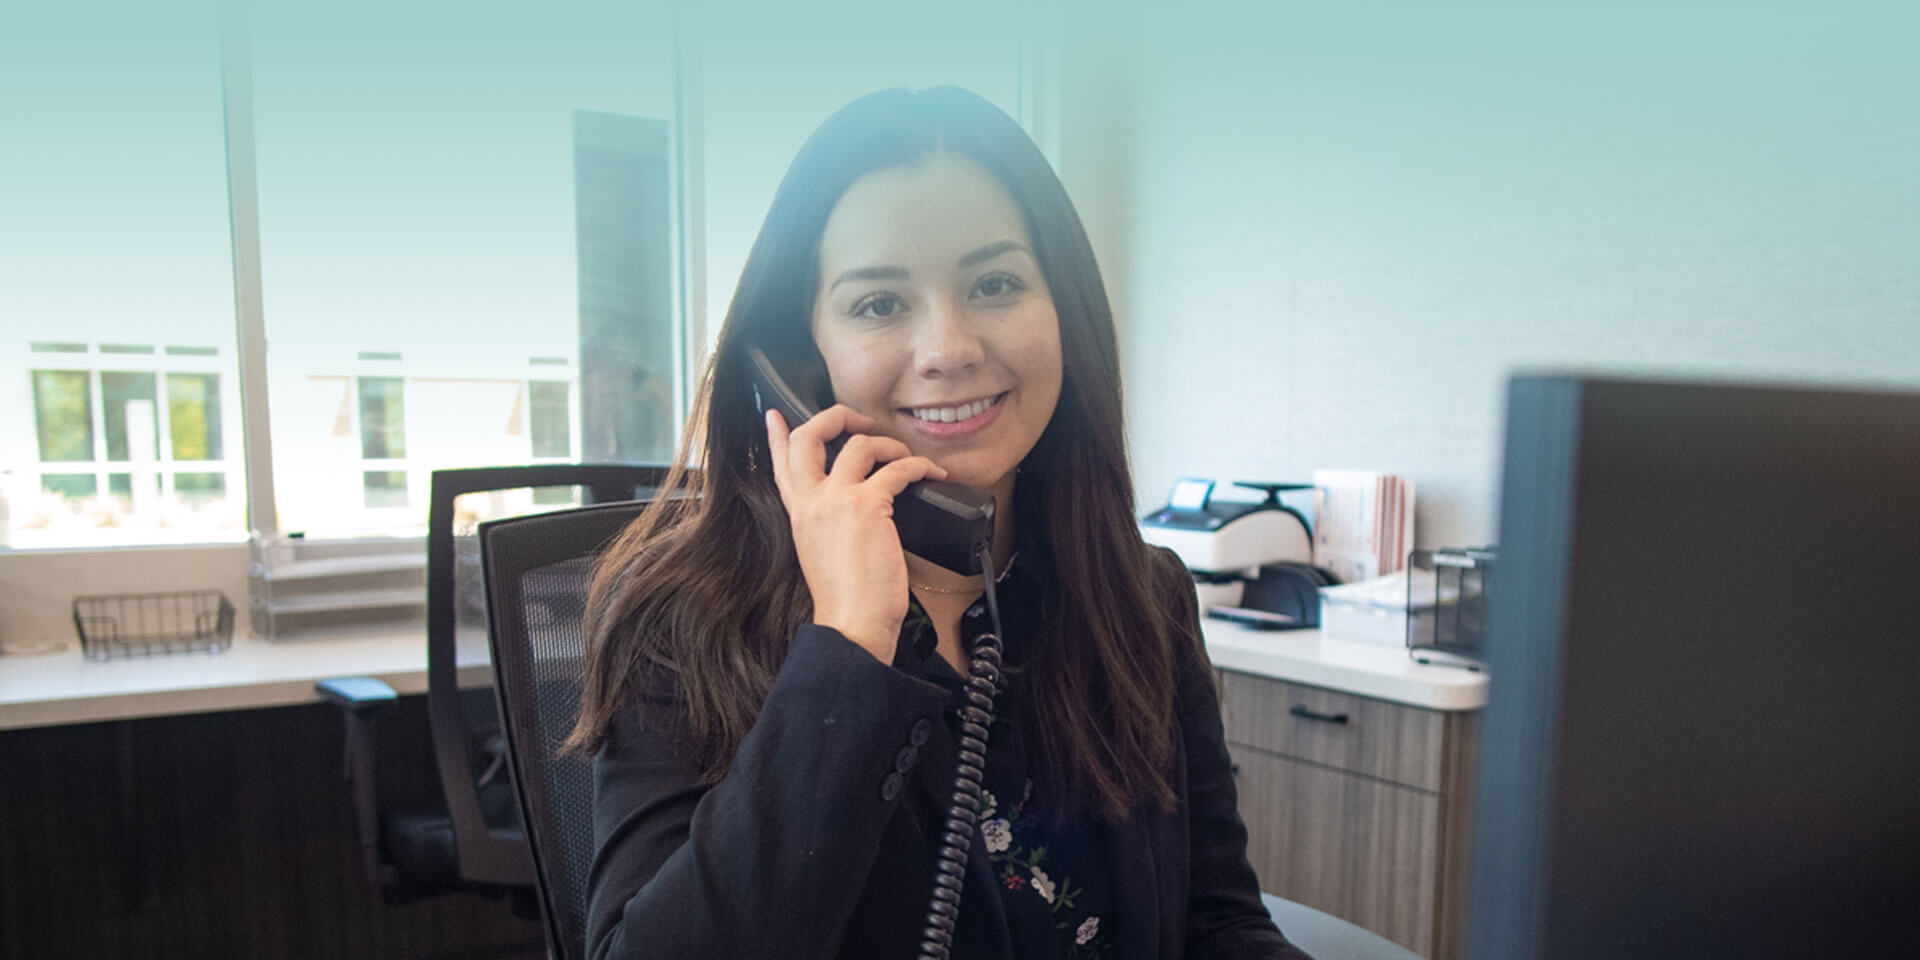 Staff member at Cosmetic Dentistry of San Antonio answering a phone call